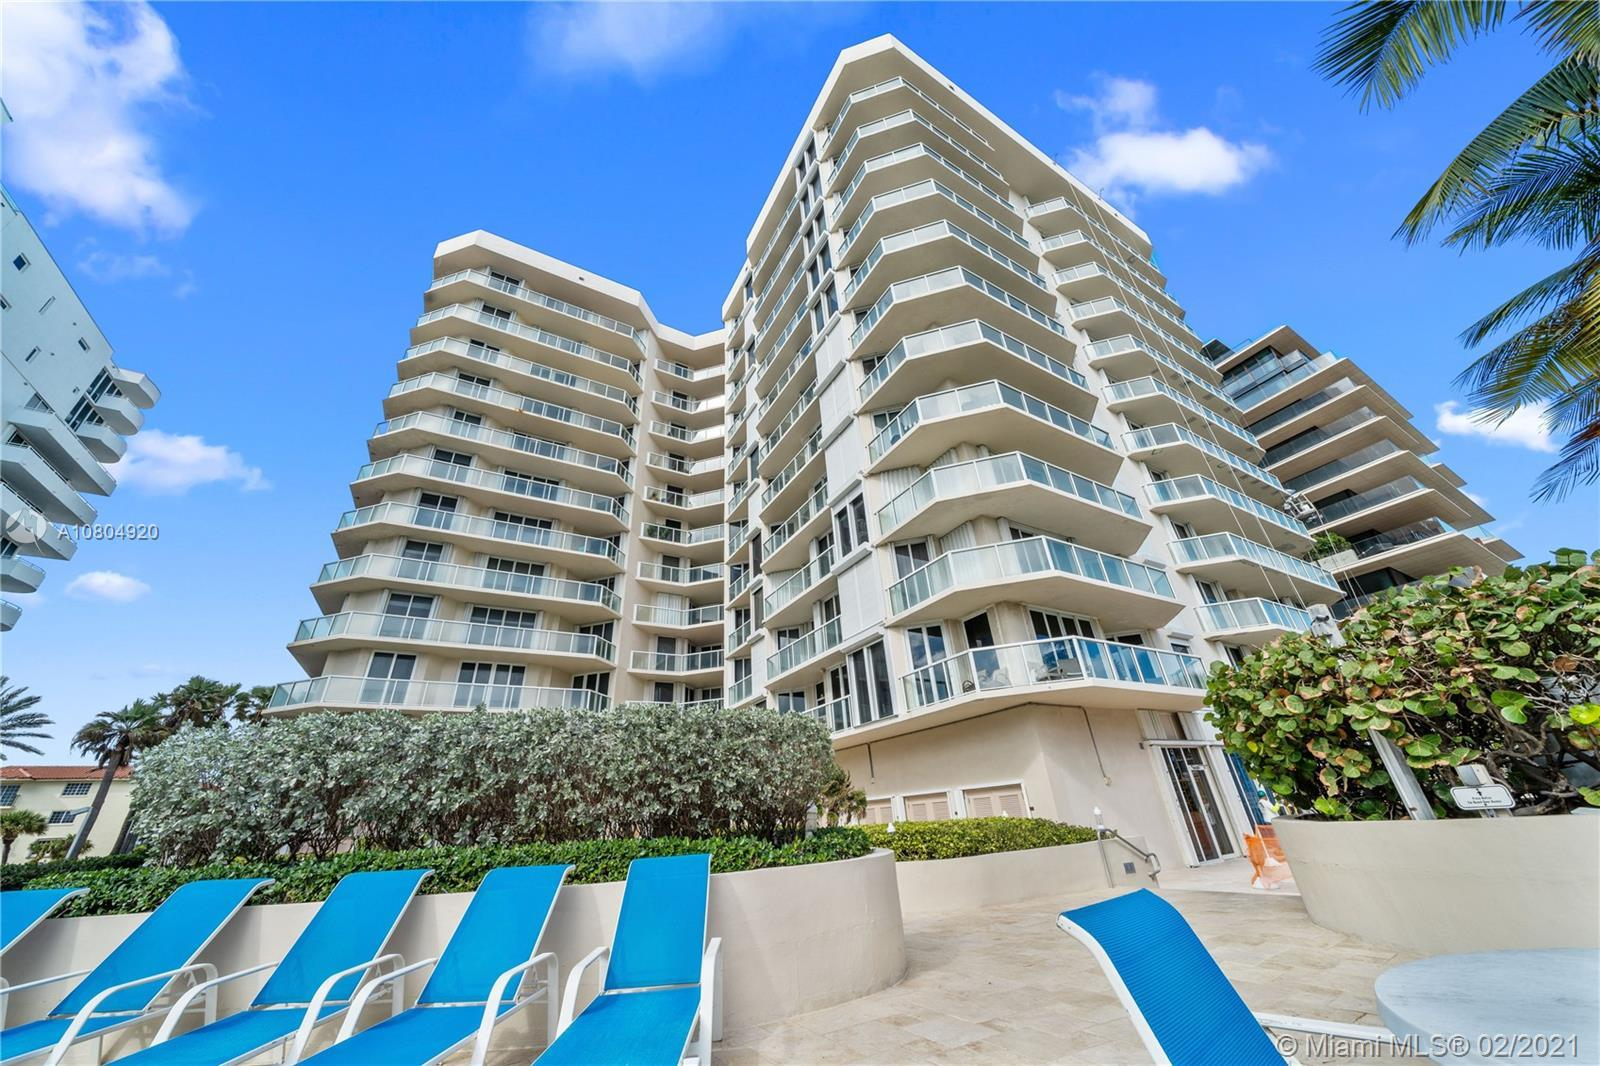 Highly desirable 2 bedroom 2.5 bath  top floor penthouse corner unit facing Biscayne Bay, Miami Skyl